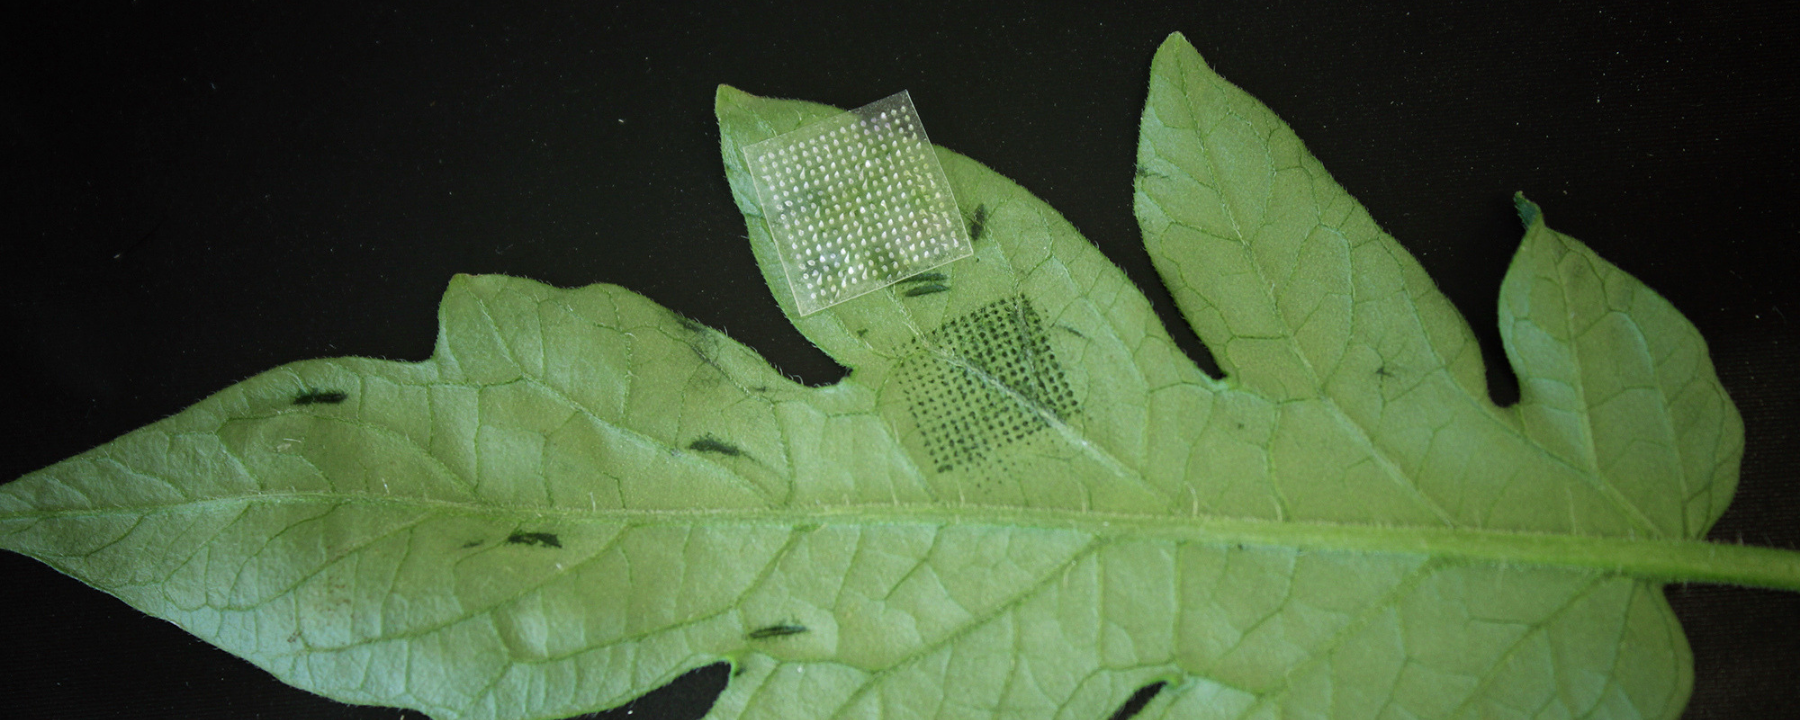 Image of the Day: Holey Leaves